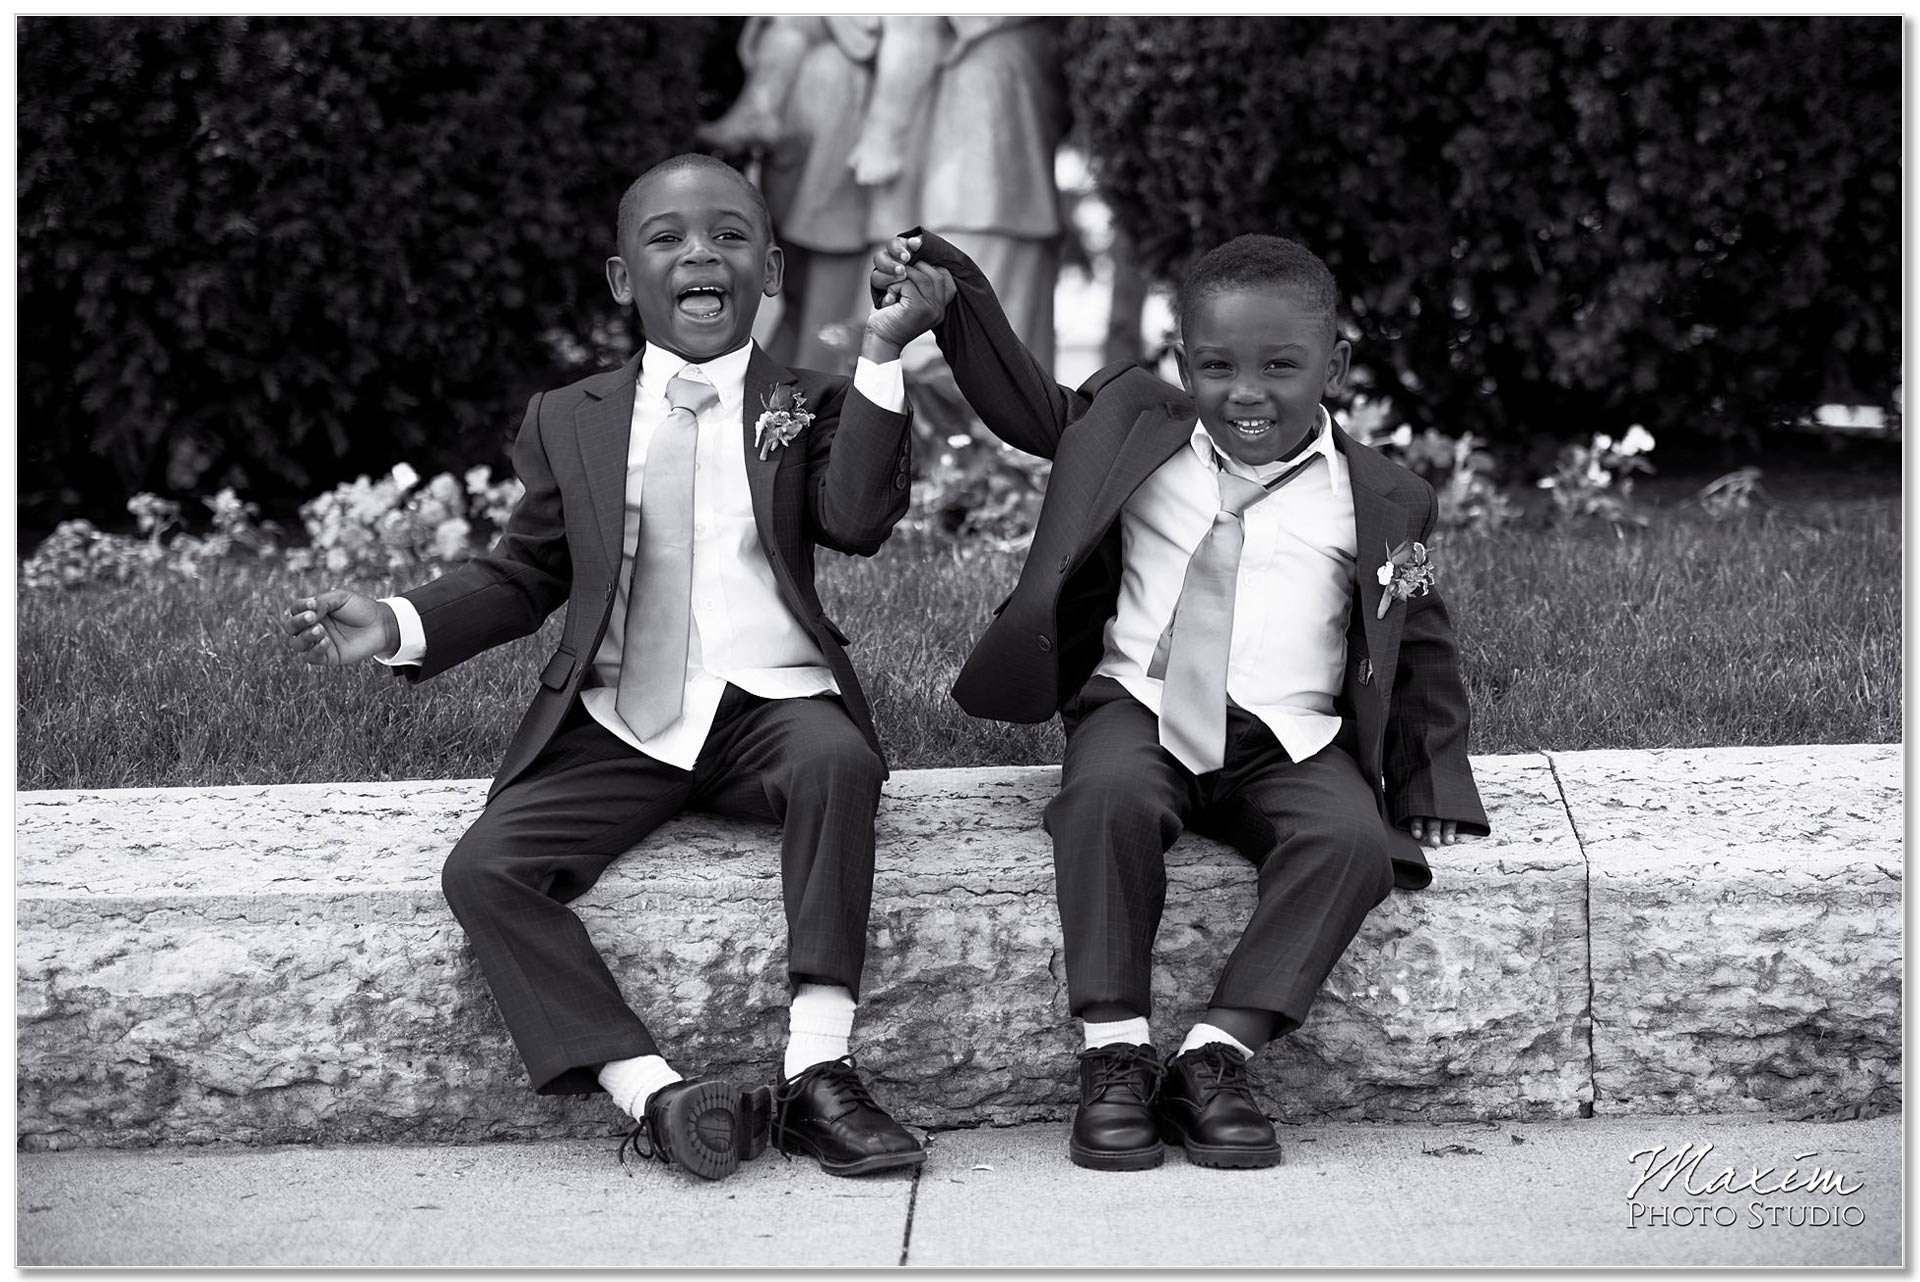 Ringbearers having wedding day fun